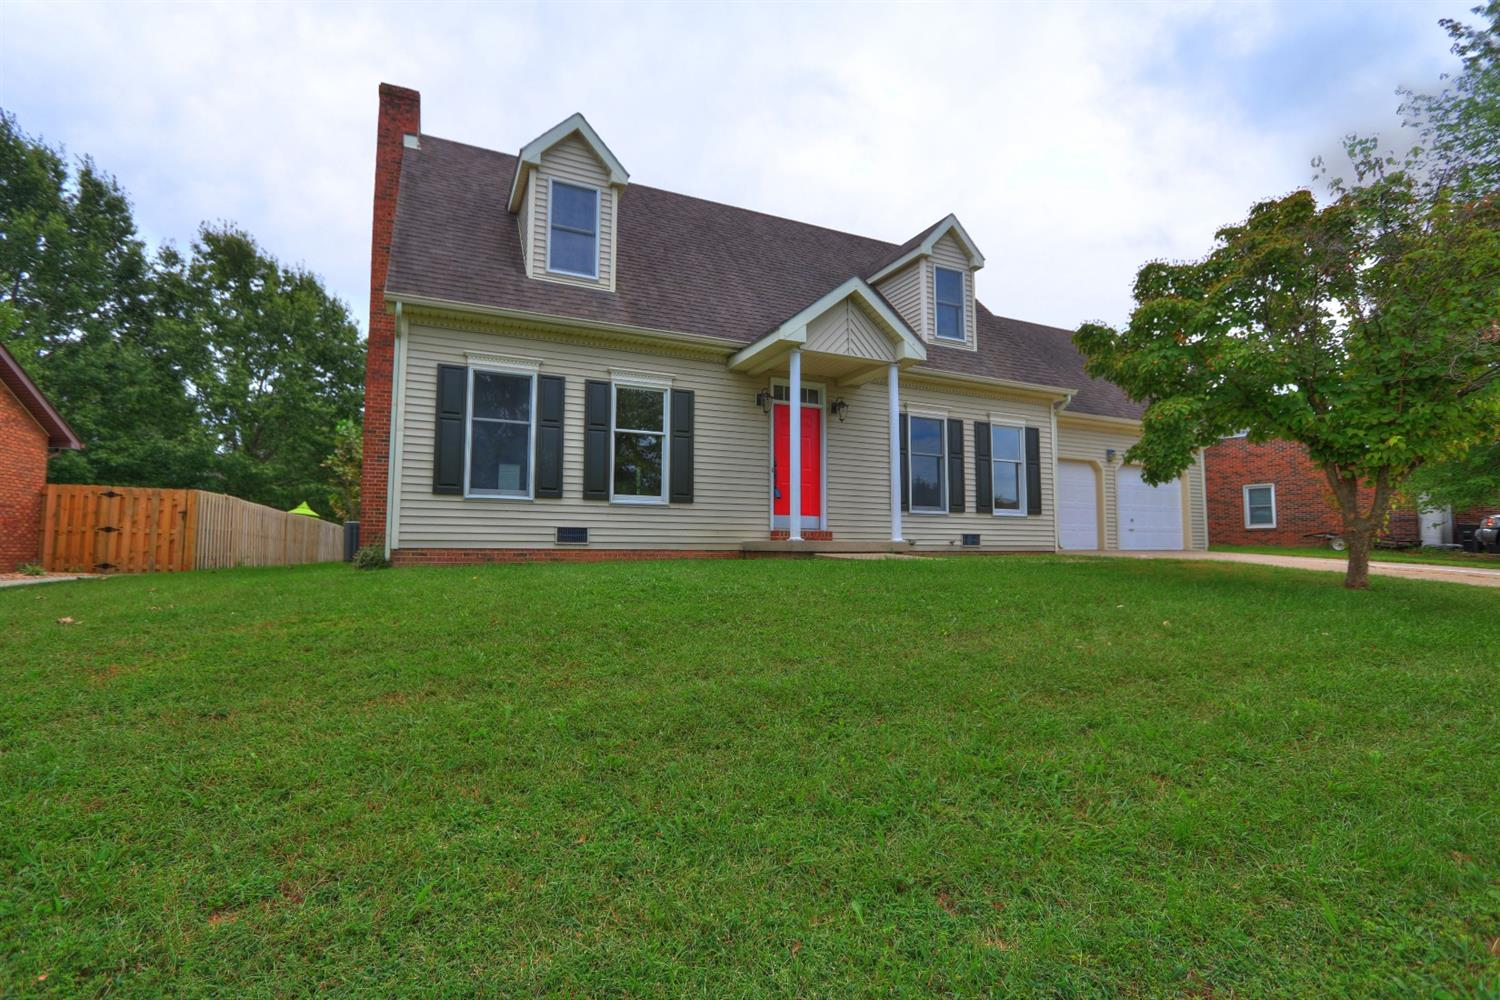 Home For Sale at 410 Winners Cir, Frankfort, KY 40601